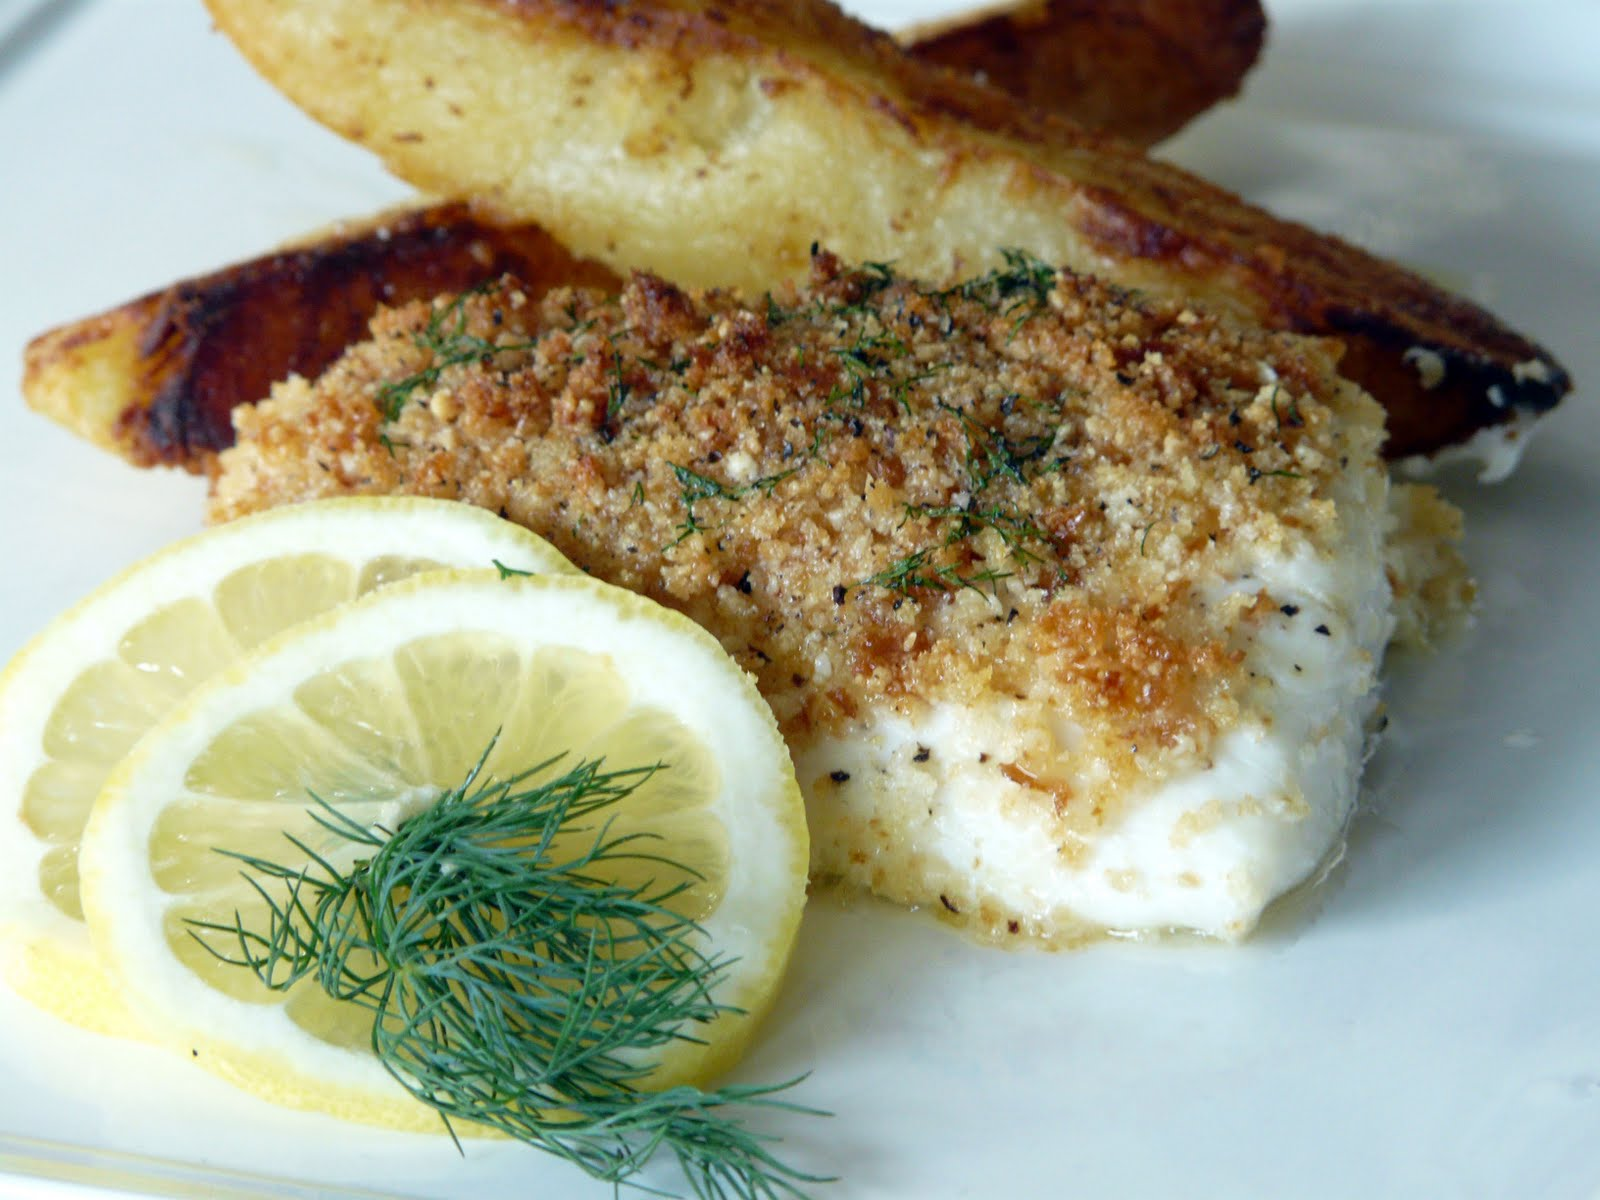 Thibeault's Table: Baked Halibut with Seasoned Bread Crumbs